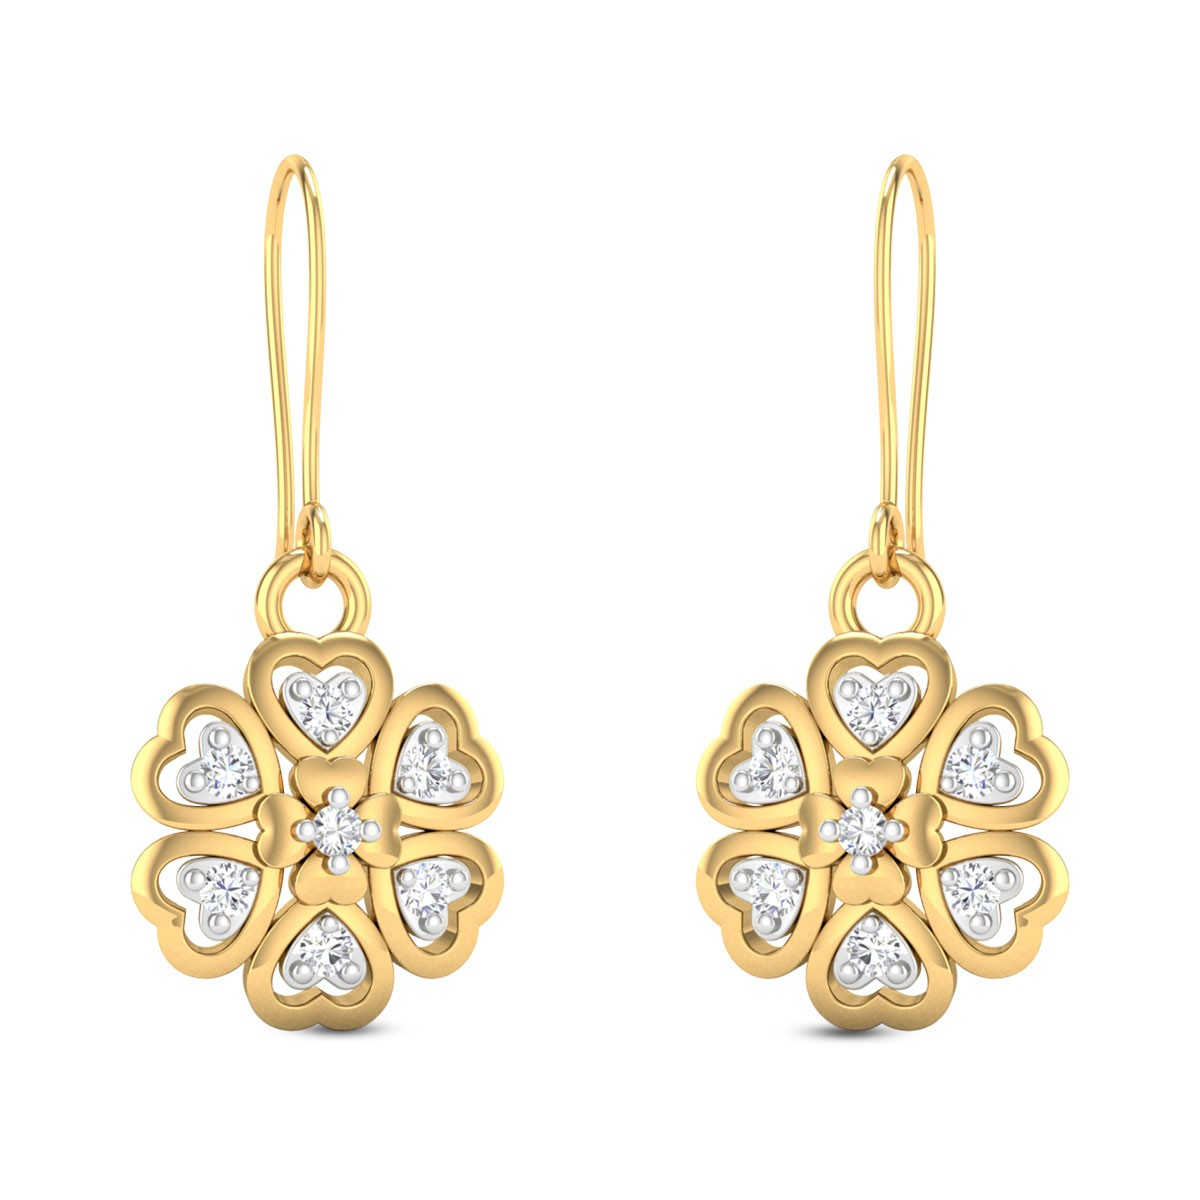 Mabbina Diamond Earrings